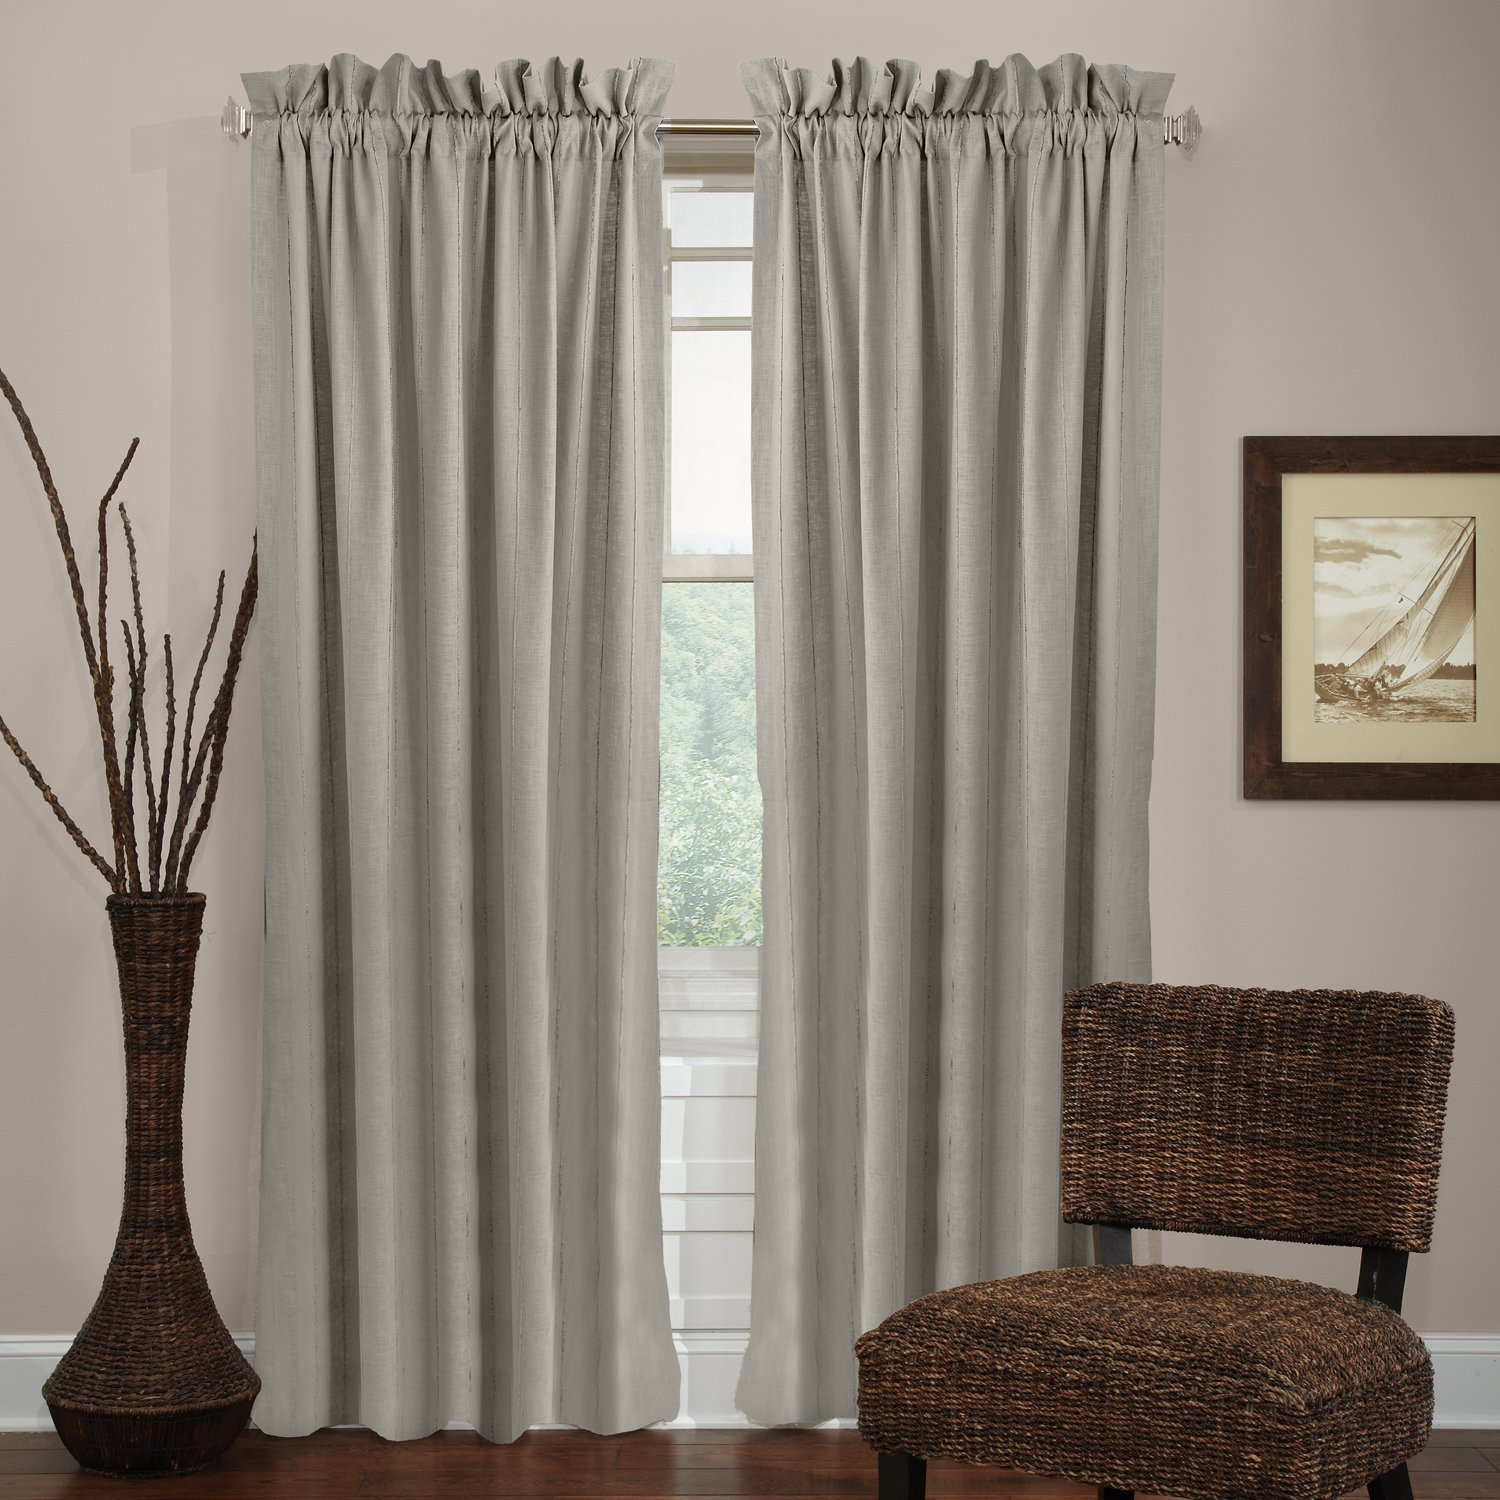 Veratex Madison 100% Linen Grommet Window Panel Made in the USA, 96-Inch, Sage